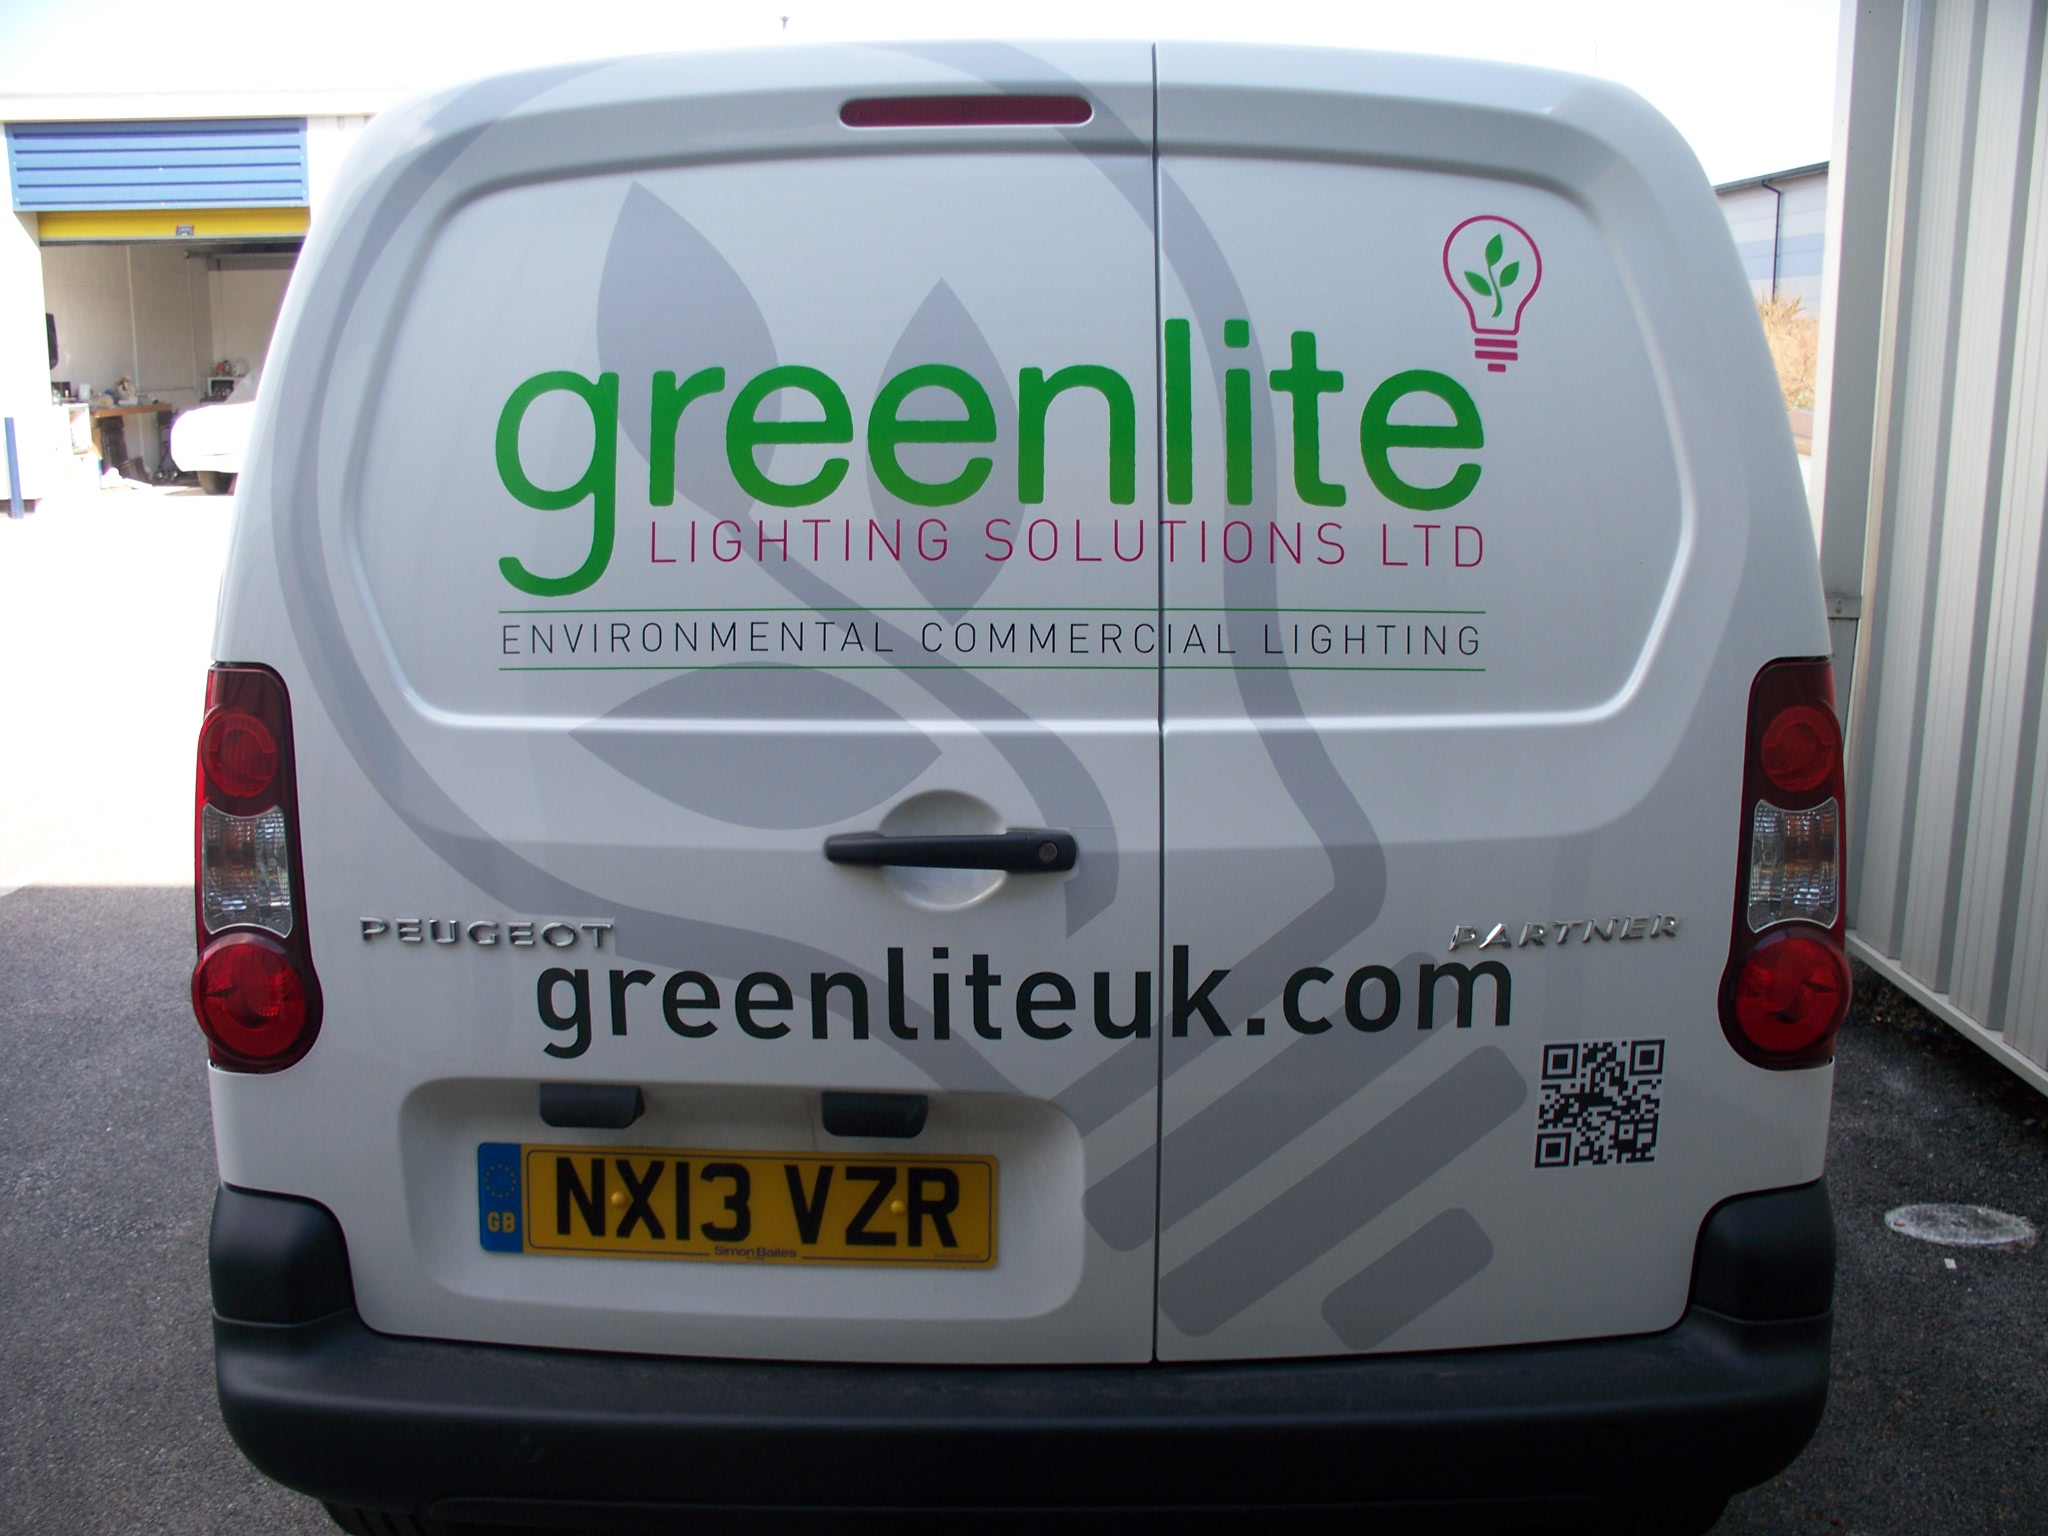 Van Lettering Part Of A Fleet For Greenlite Lighting & Greenlite Lighting Solutions - Democraciaejustica